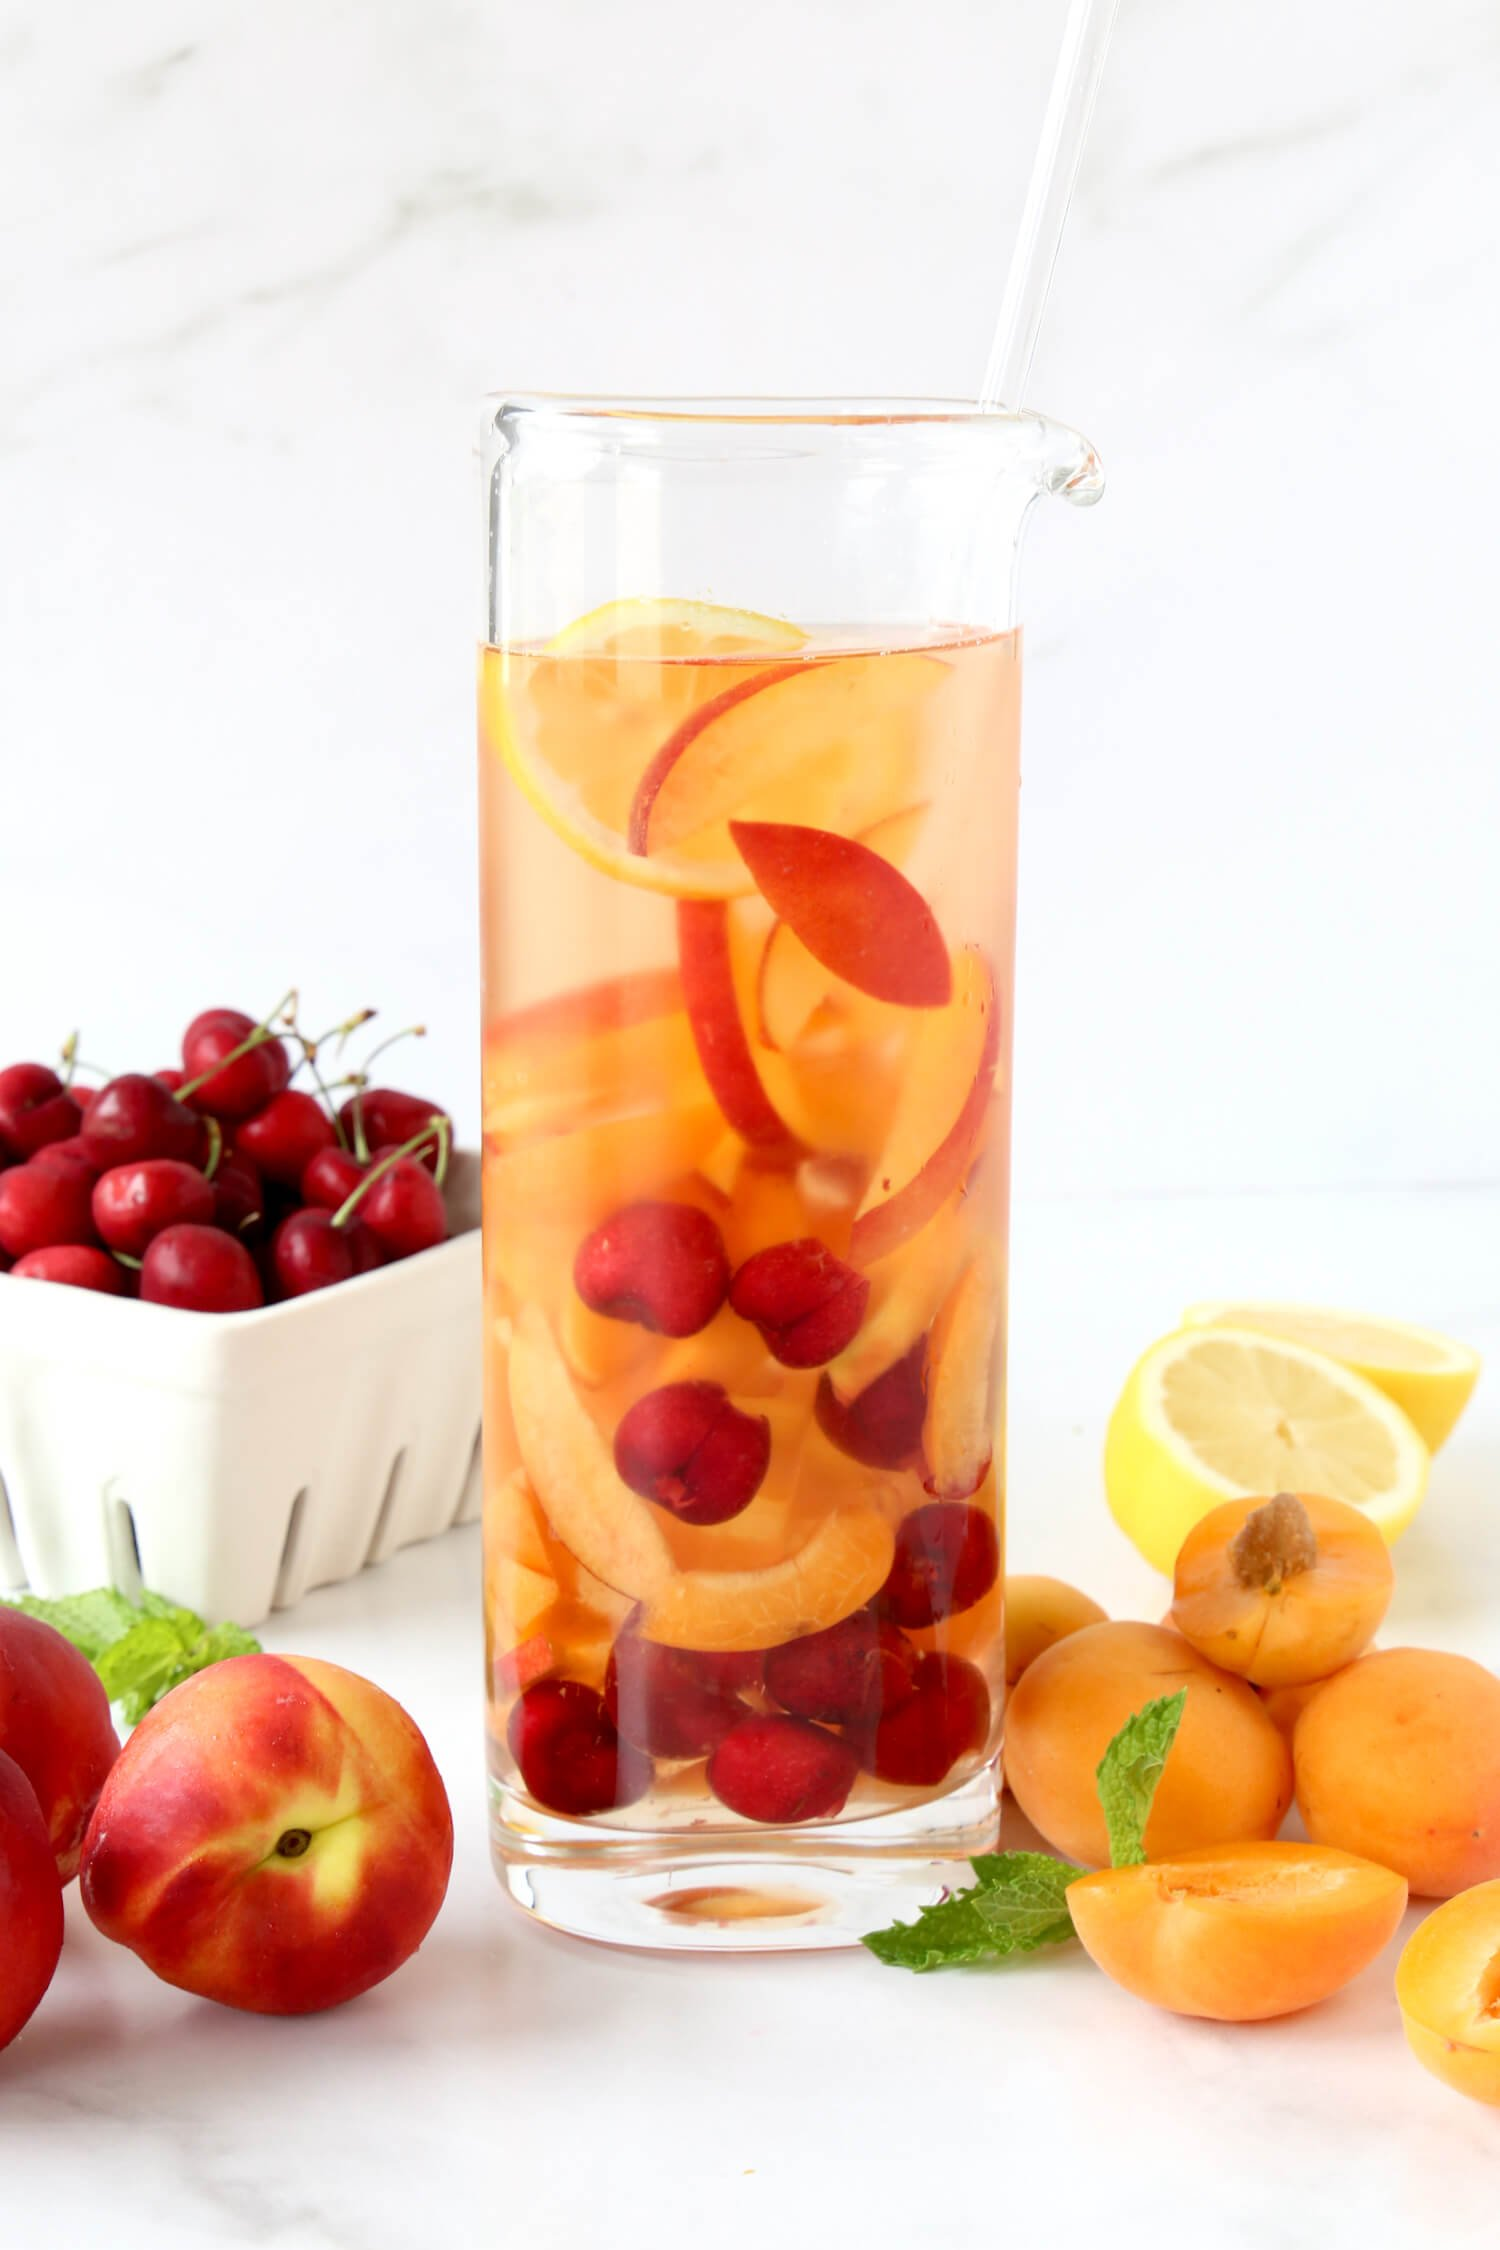 A large pitcher filled with rosé and stone fruit sitting in front of a container of cherries and whole nectarines.